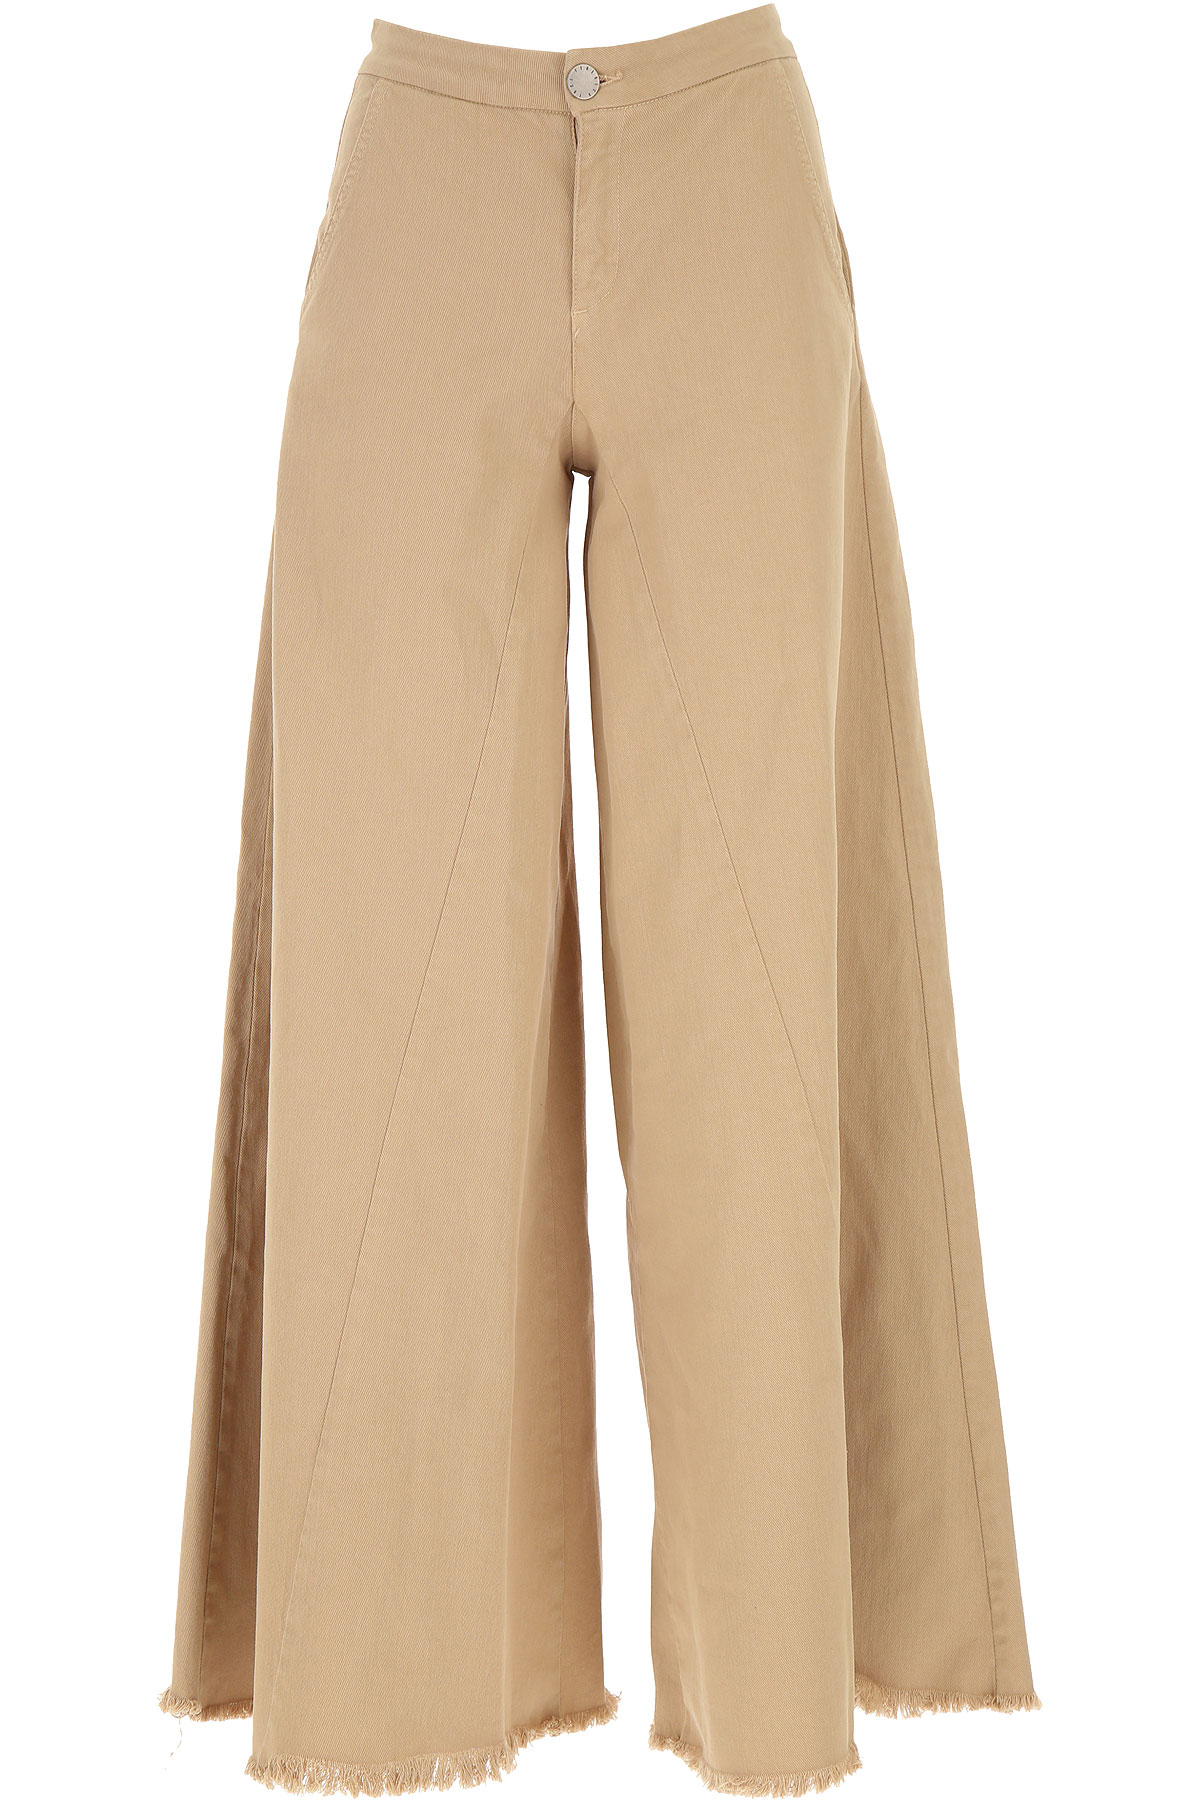 Federica Tosi Pants for Women On Sale, Camel, Cotton, 2019, 26 4 8